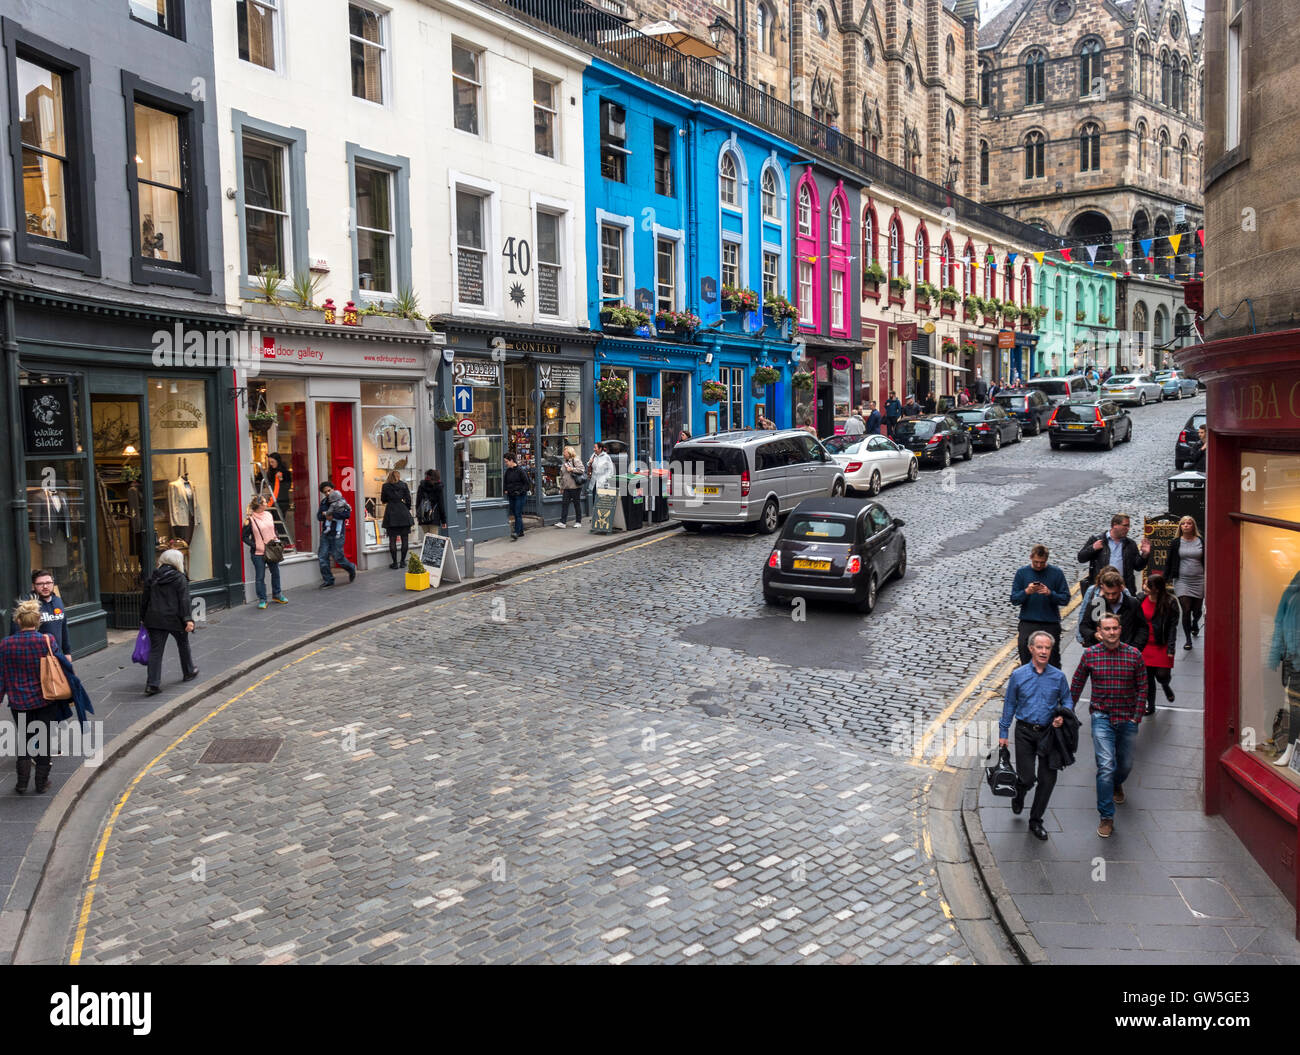 http://c7.alamy.com/comp/GW5GE3/edinburgh-west-bow-and-victoria-street-with-colorful-shops-in-the-GW5GE3.jpg